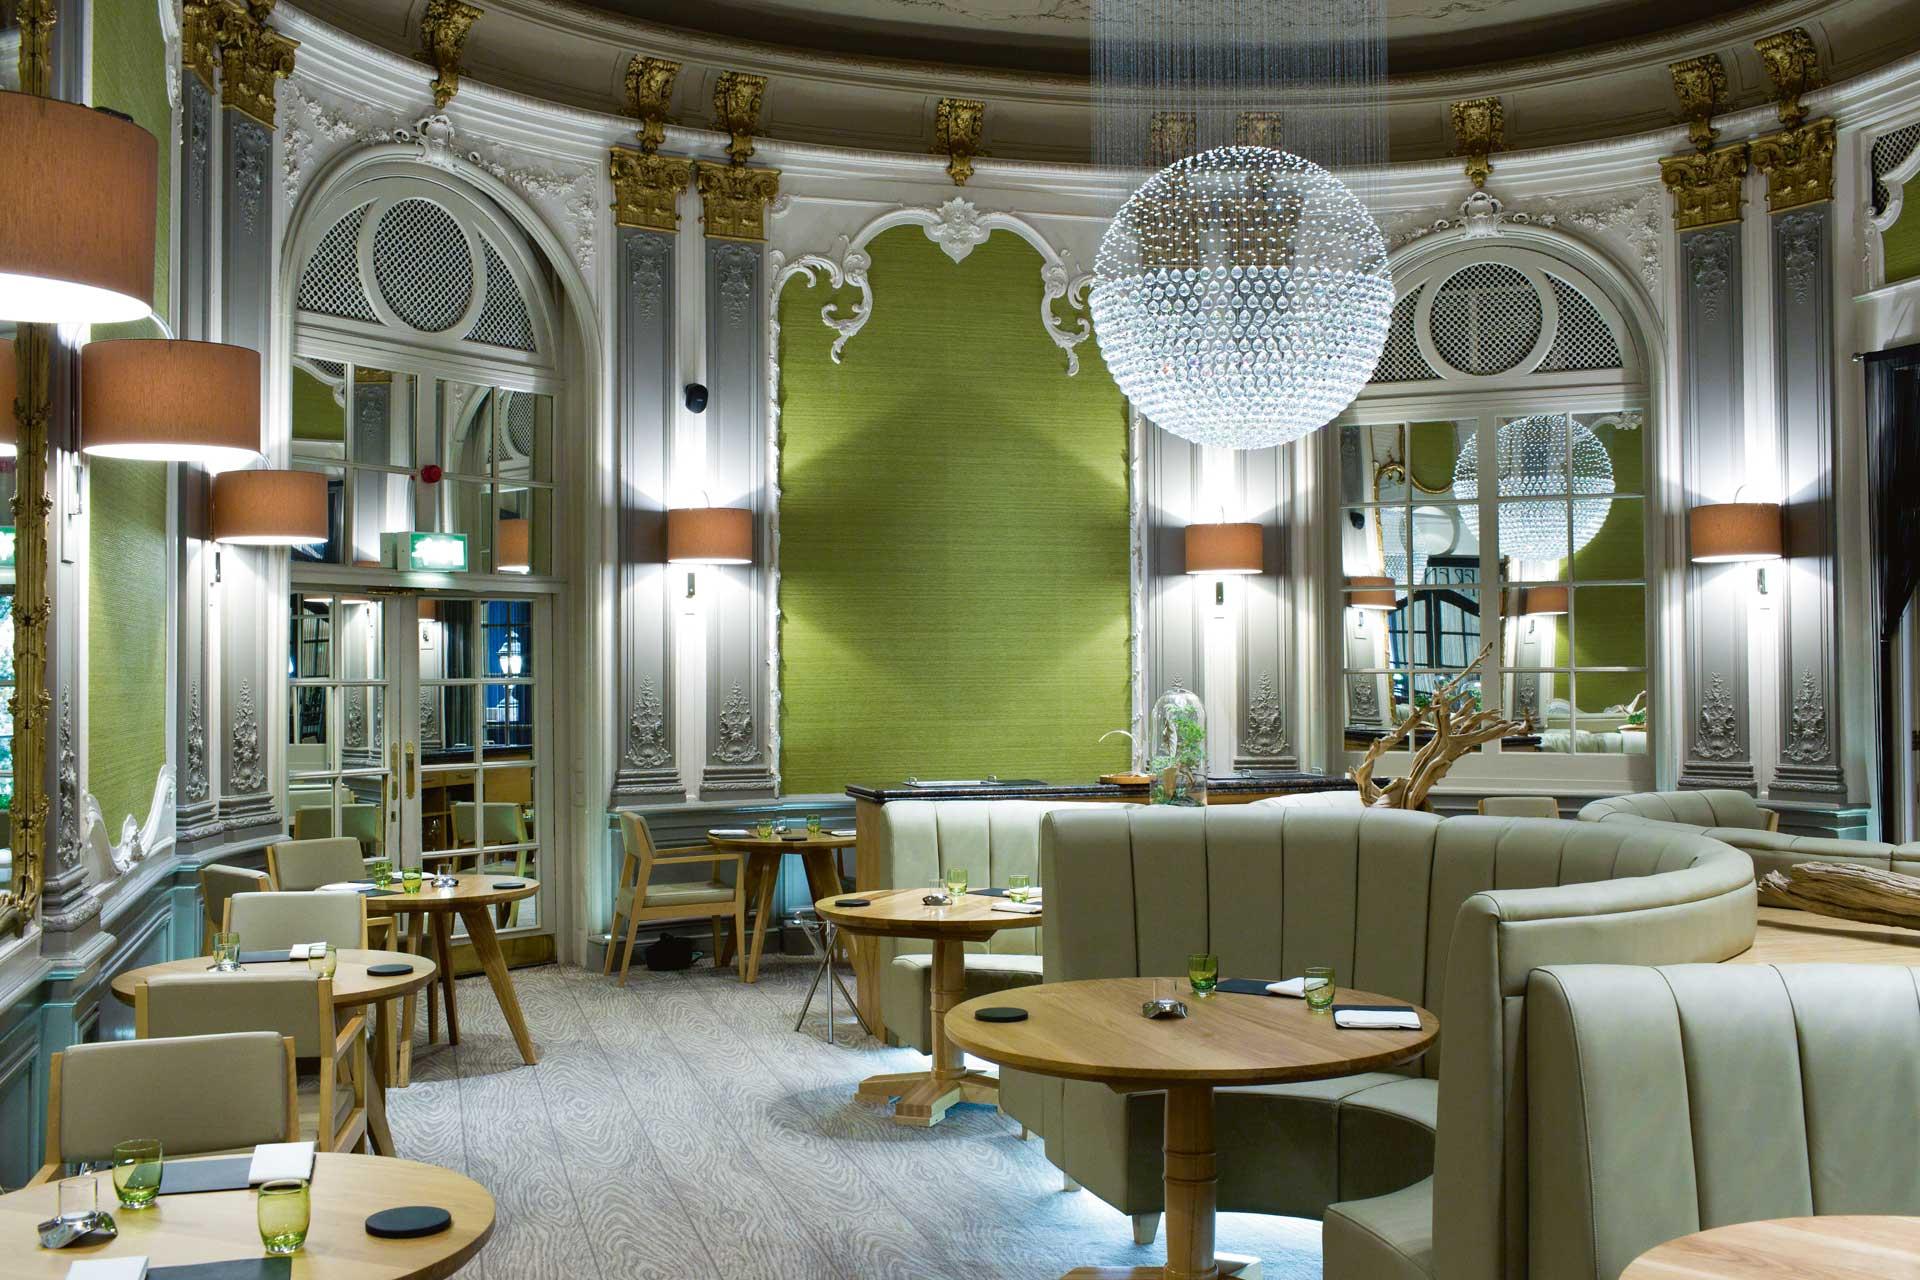 Interiors of hotel restaurant Simon Rogan at The French